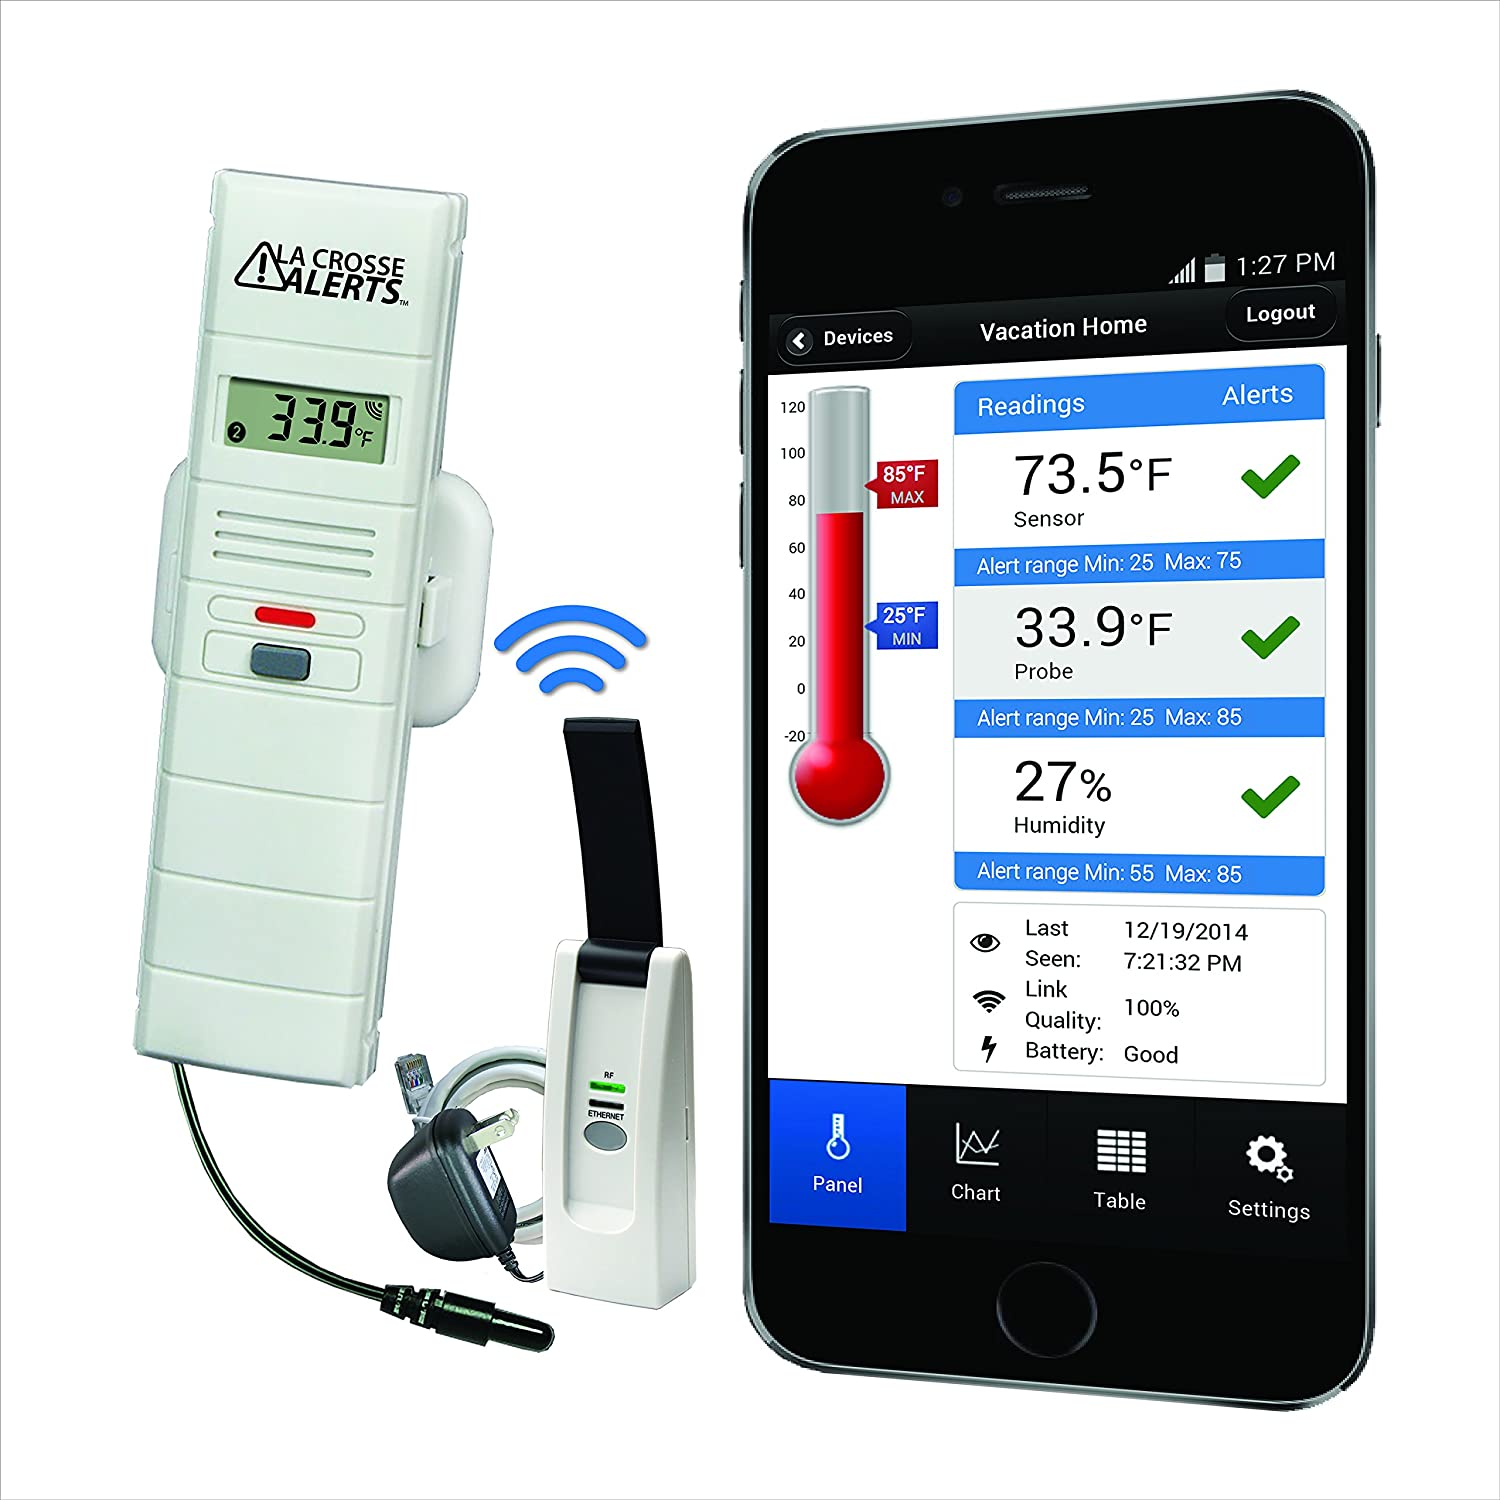 La Crosse Alerts Mobile 926-25101-GP Wireless Monitor System Set with Dry Probe